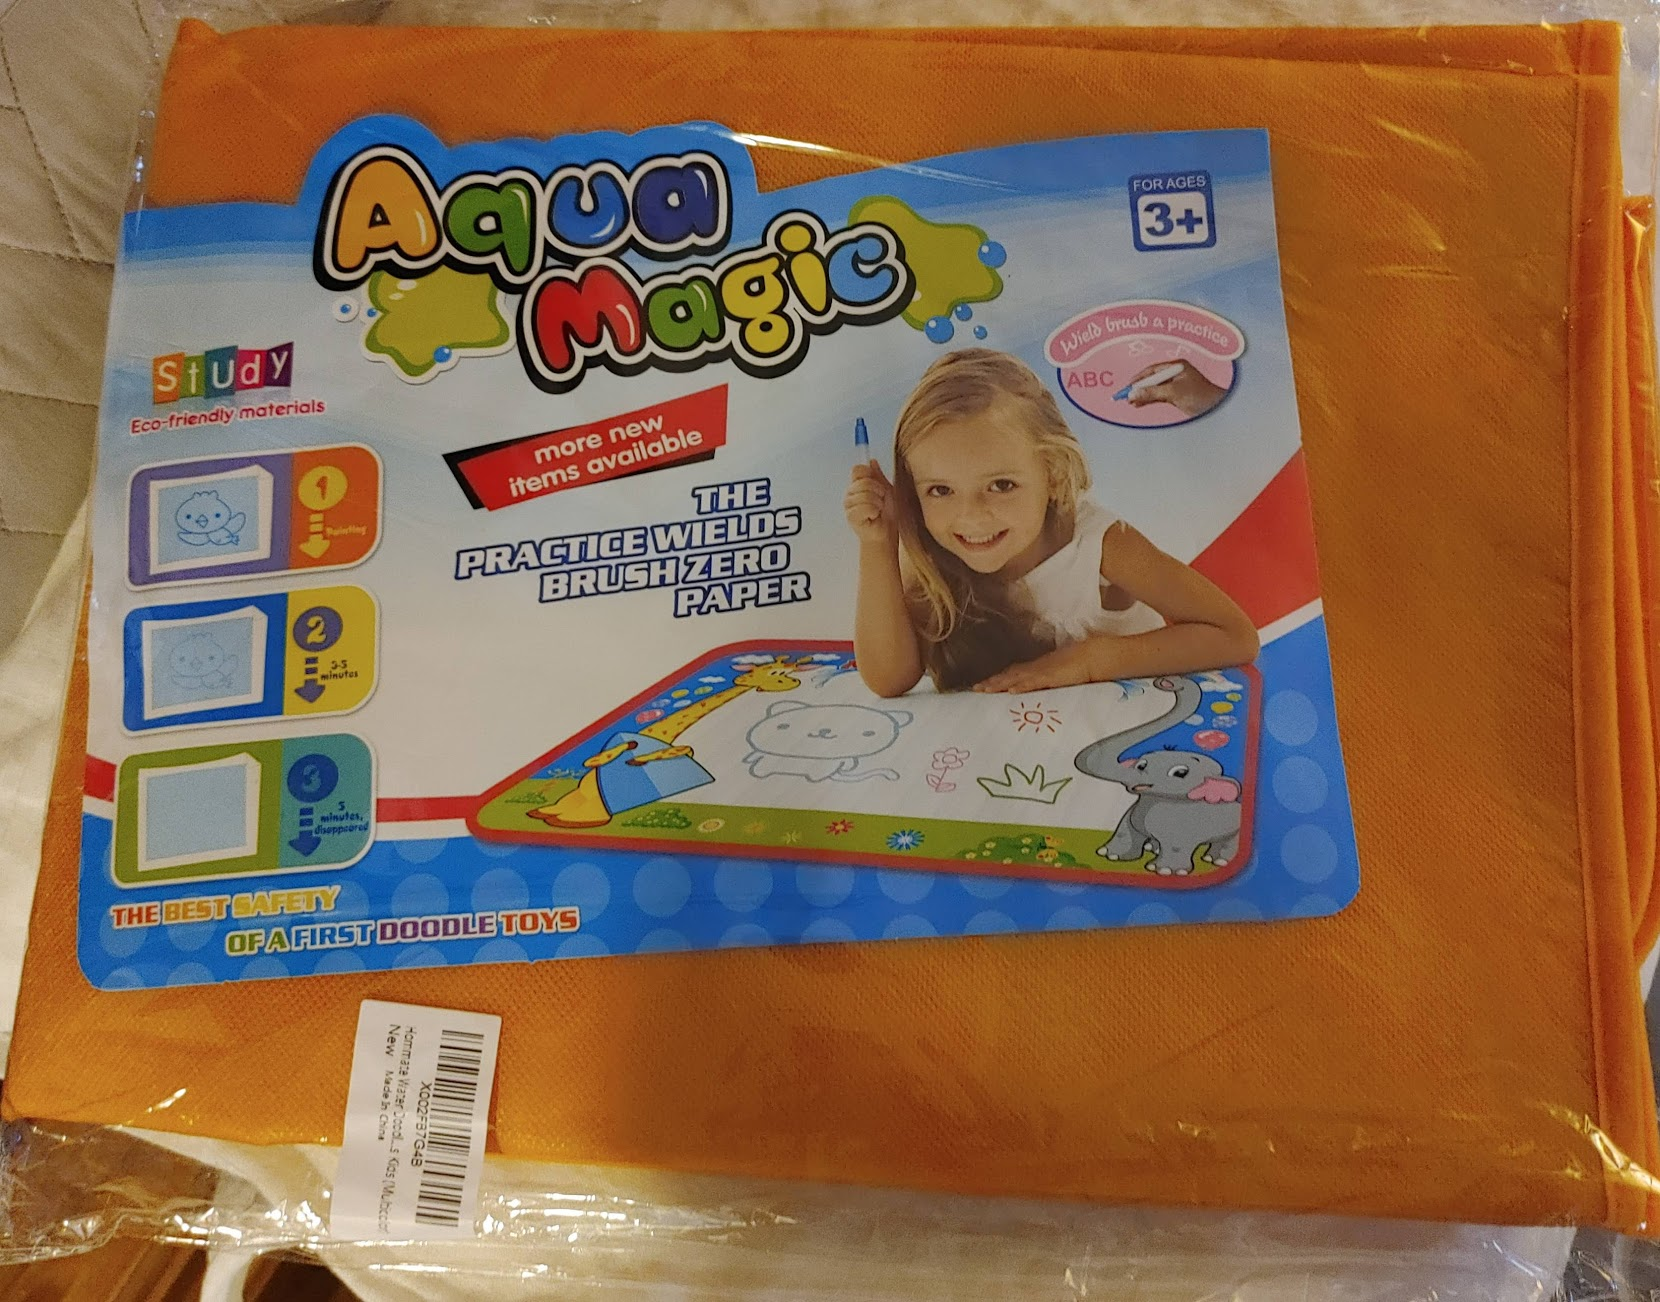 Great Product For The Kids!!